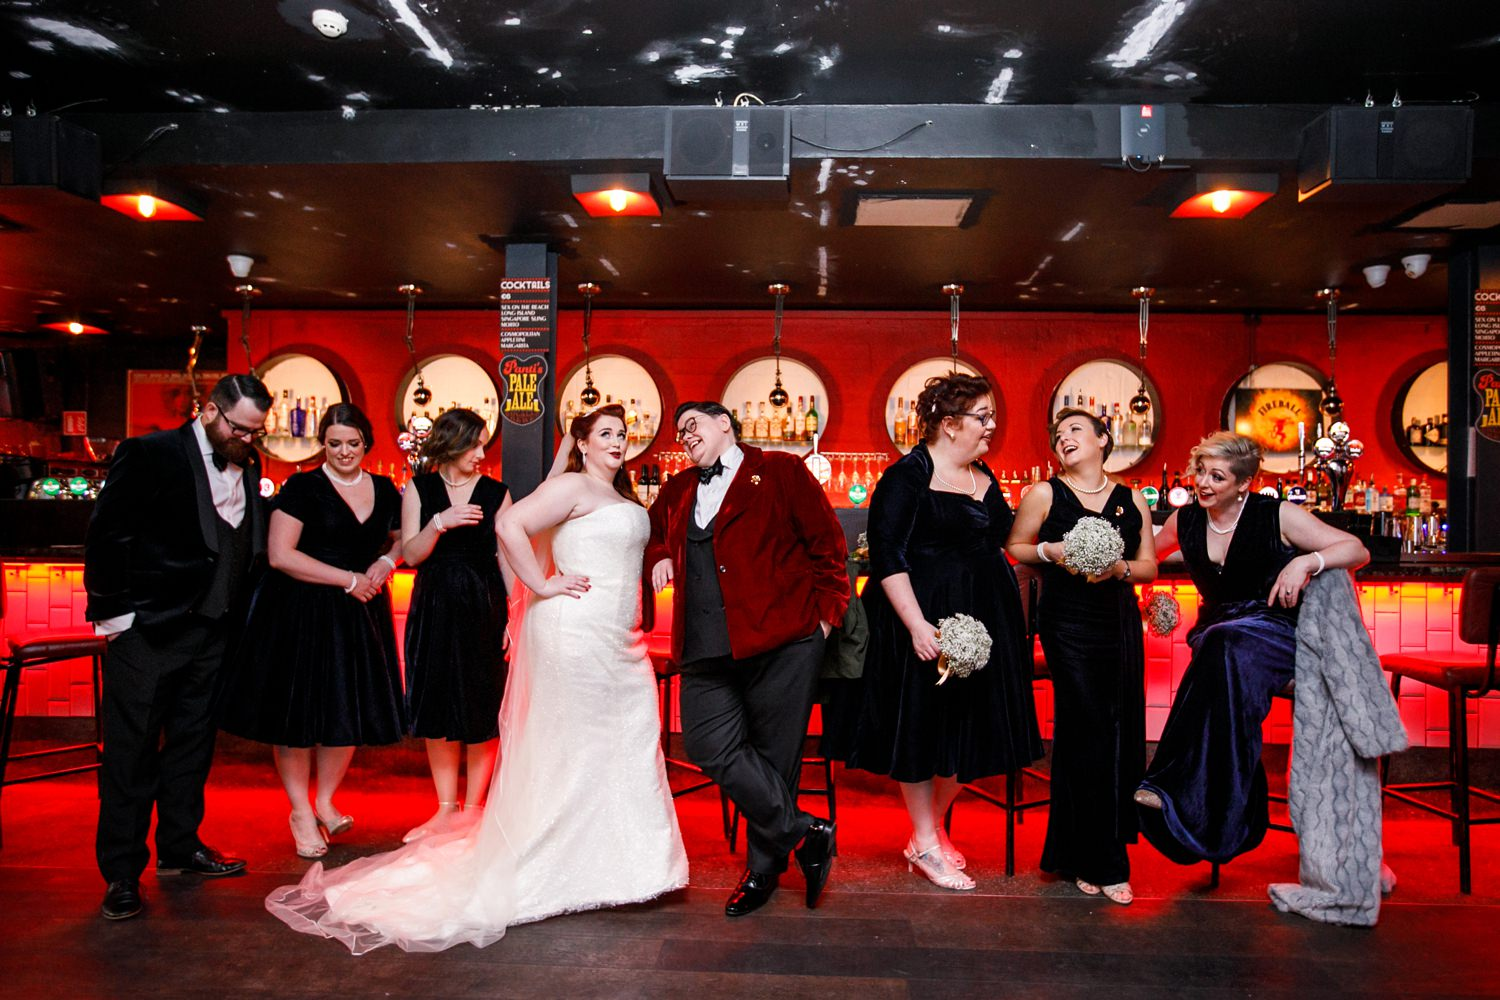 Elisha-Clarke-Photography-Dublin-City-Wedding_00430.jpg